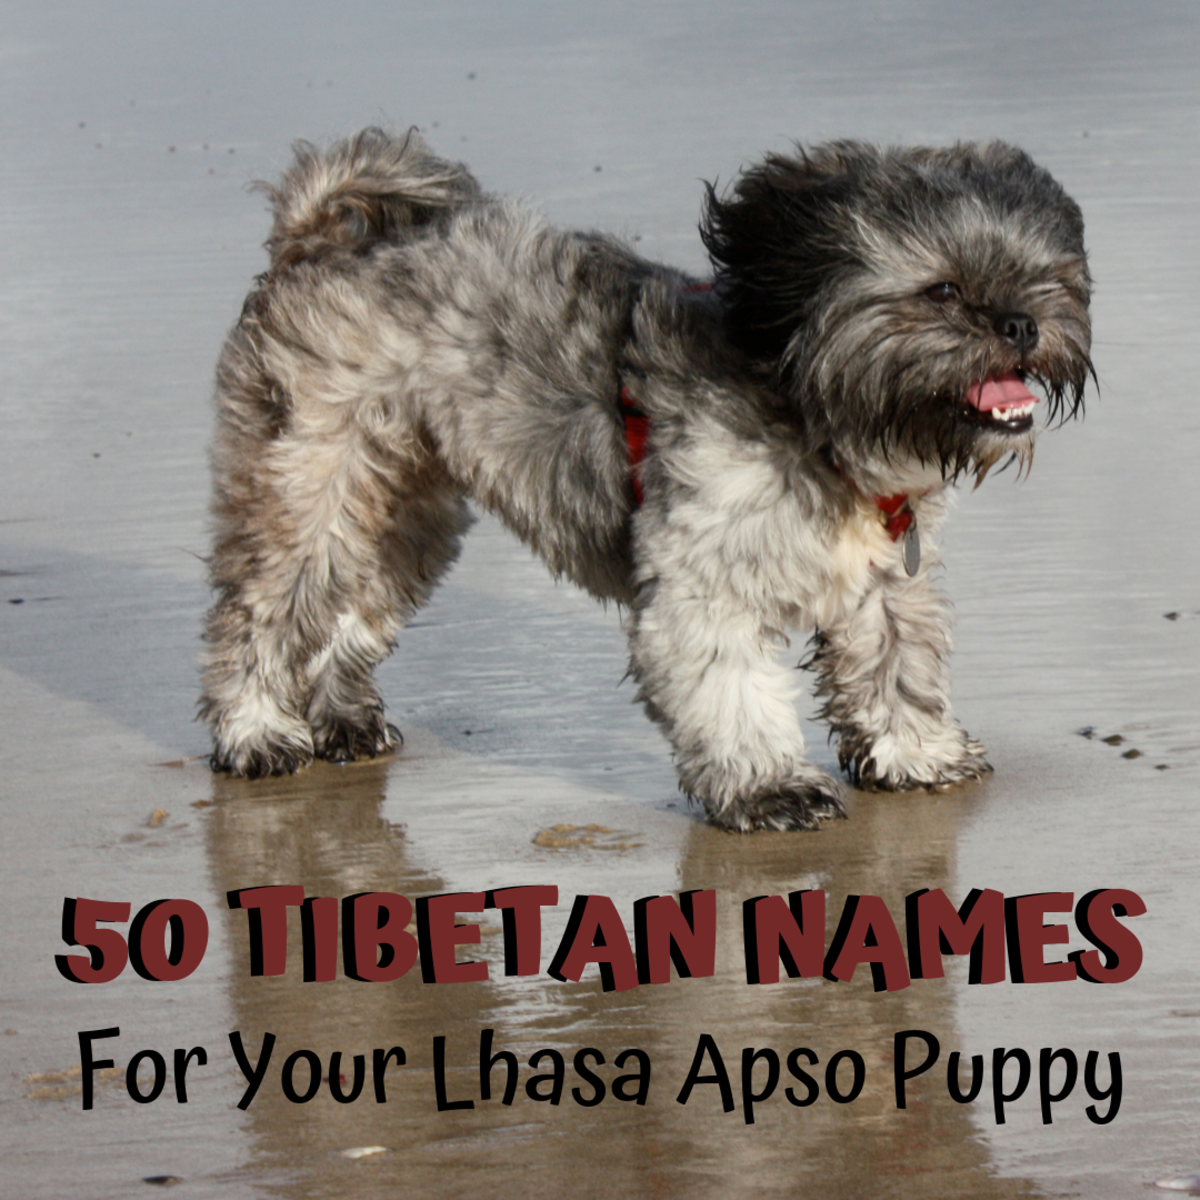 50 Cool Tibetan Dog Names for Your Lhasa Apso Puppy